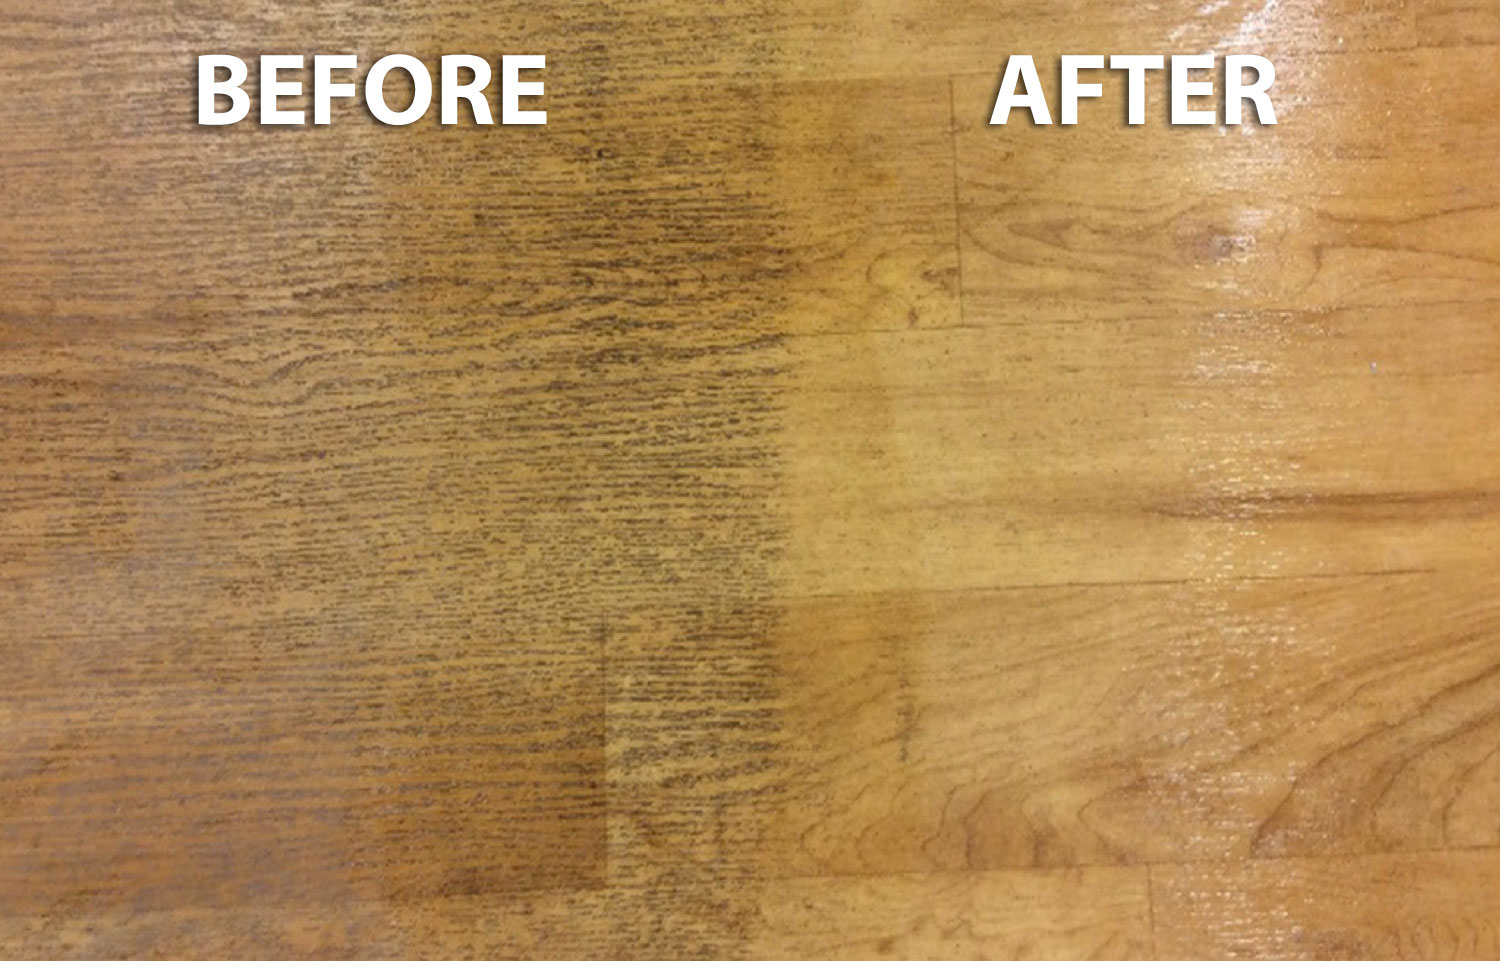 Before & After - Luxury Vinyl Flooring After Being Cleaned by EnvirOx product